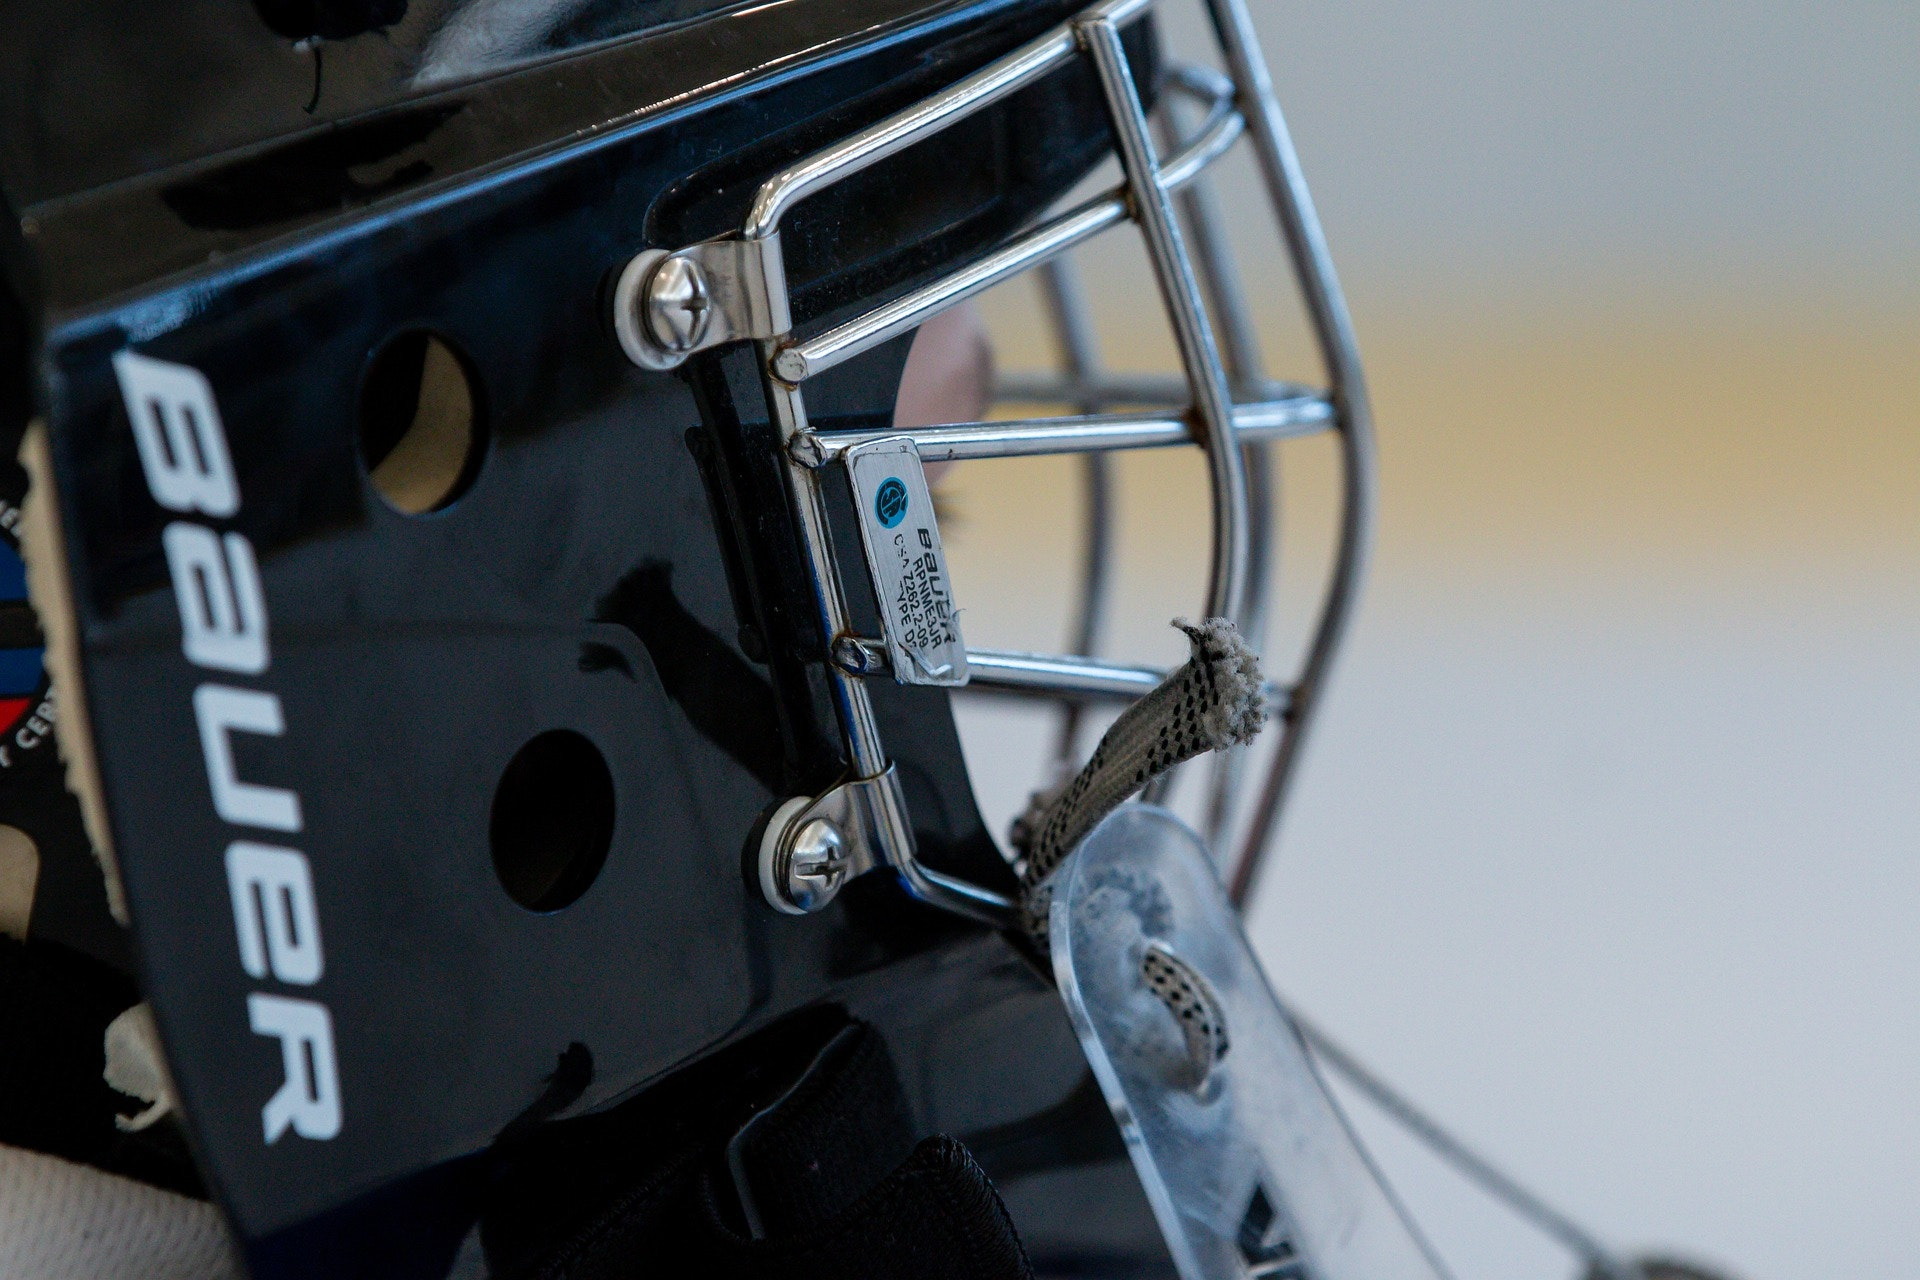 Ice hockey helmet with a face cage